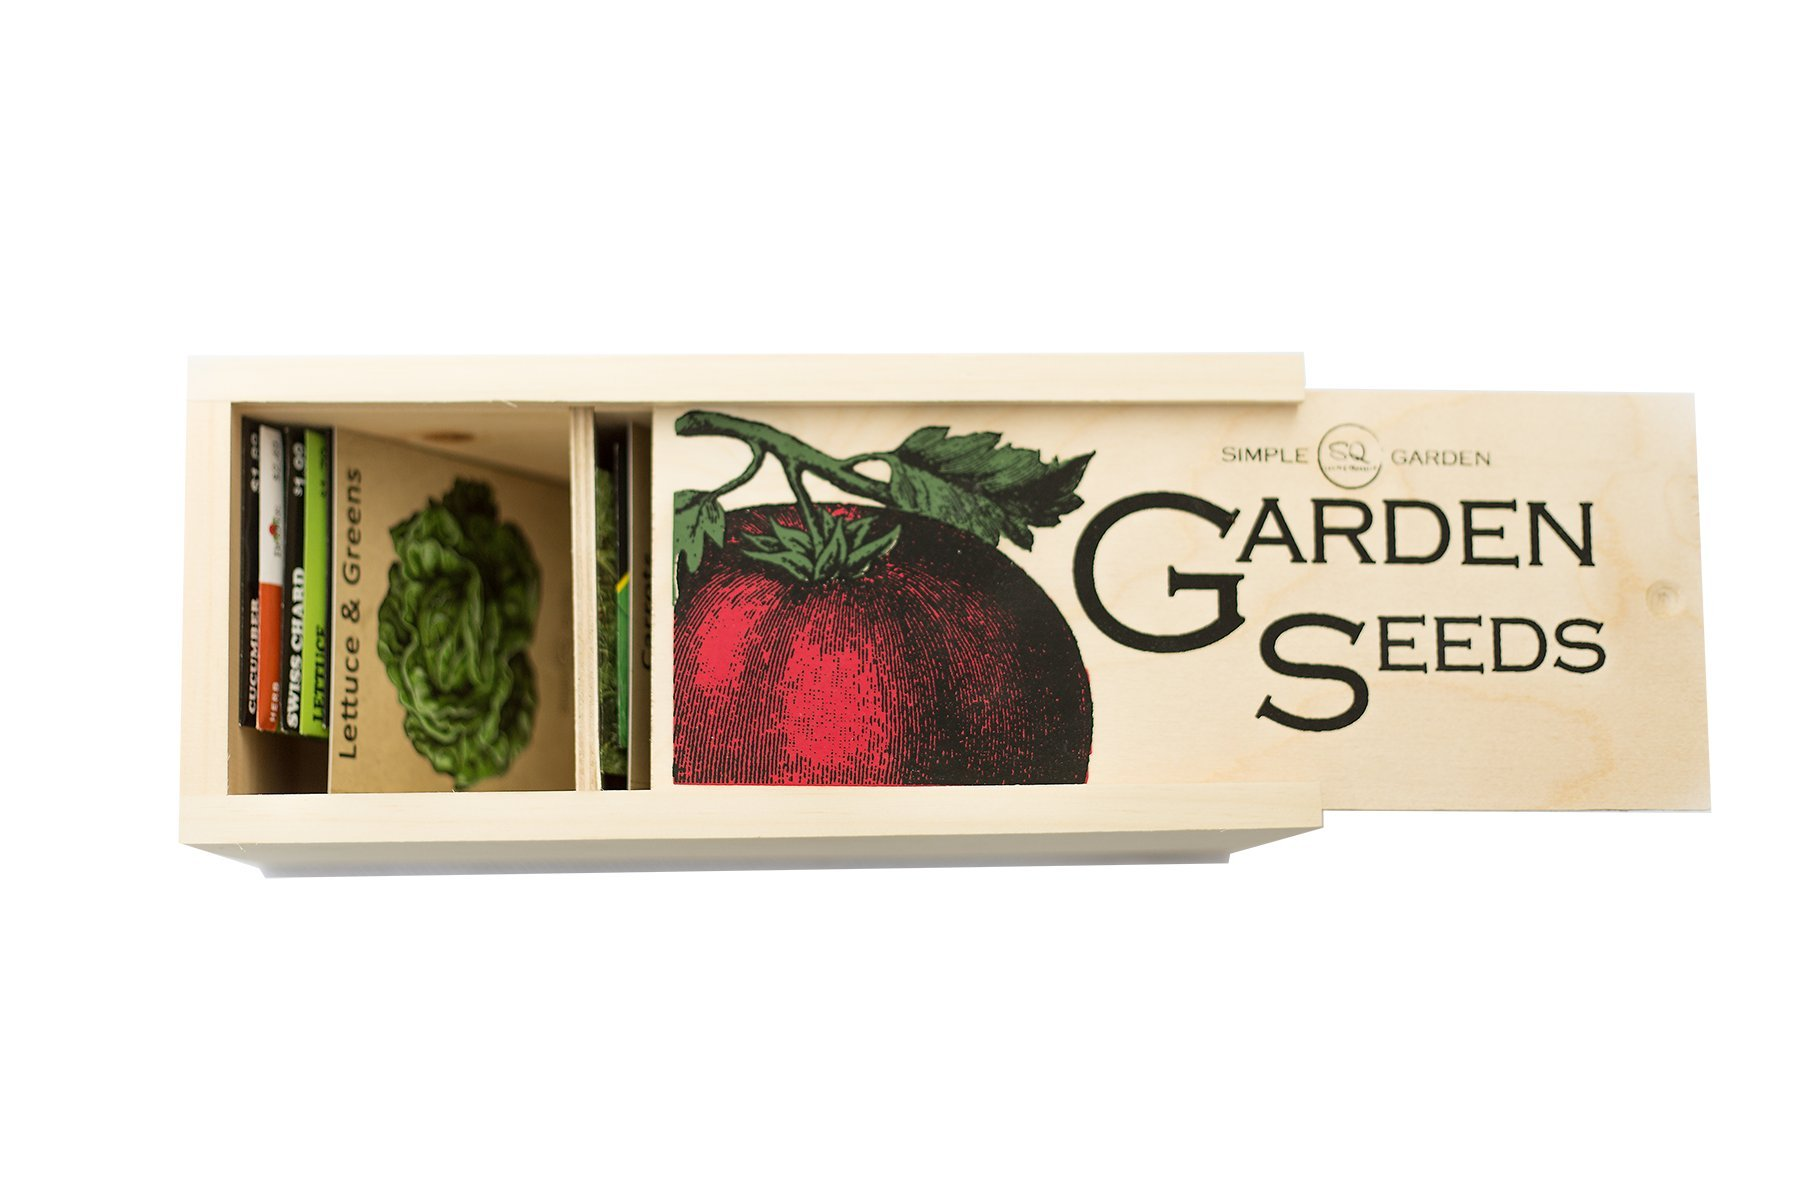 Seed Storage and Organizer Box for Your Garden Seed Packets - New - Tall Size -11.75 L 5.1 Wide 6.5 H - Expertly Crafted in The U.S.A. with Vintage Style Divider Cards to Organize Seeds by Simple Quality (Image #3)